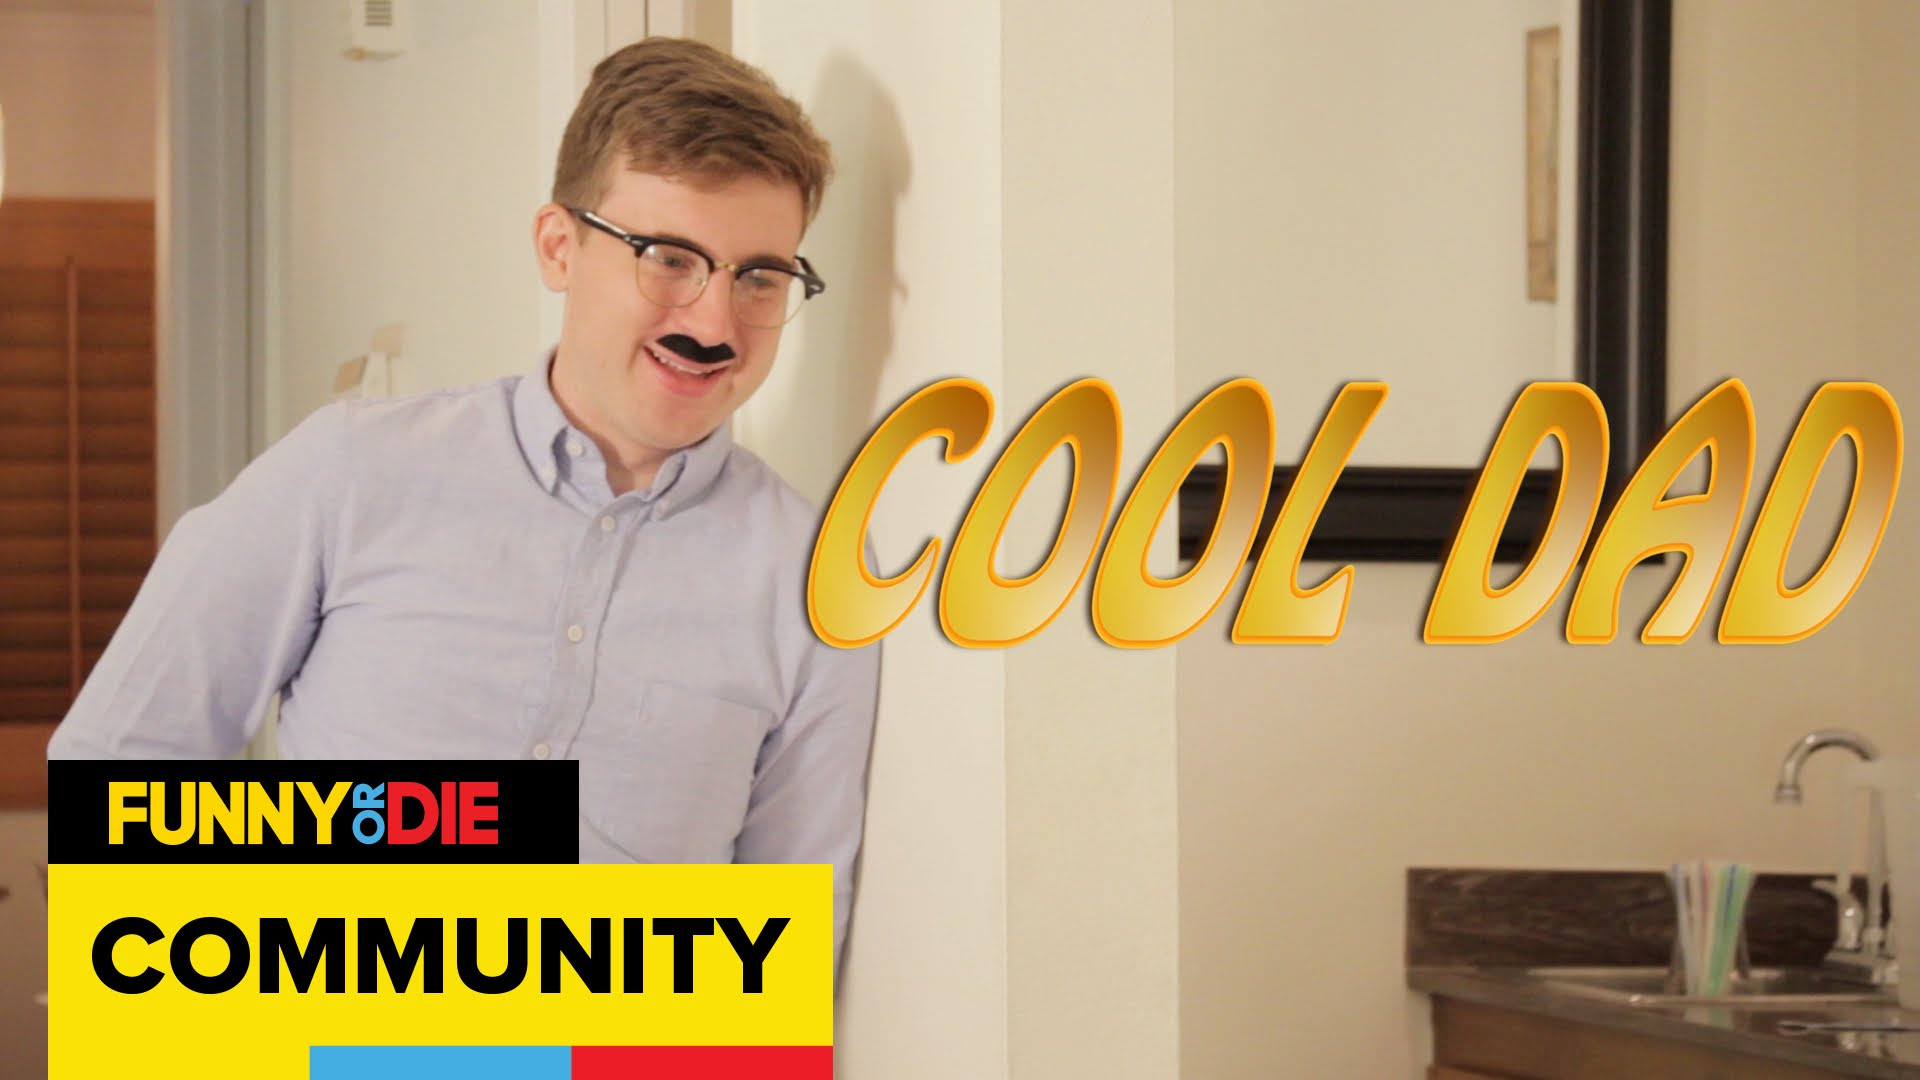 'Cool Dad', A Rapidly Escalating Comedy Sketch About Parenting, Boundaries, and Bad Decisions